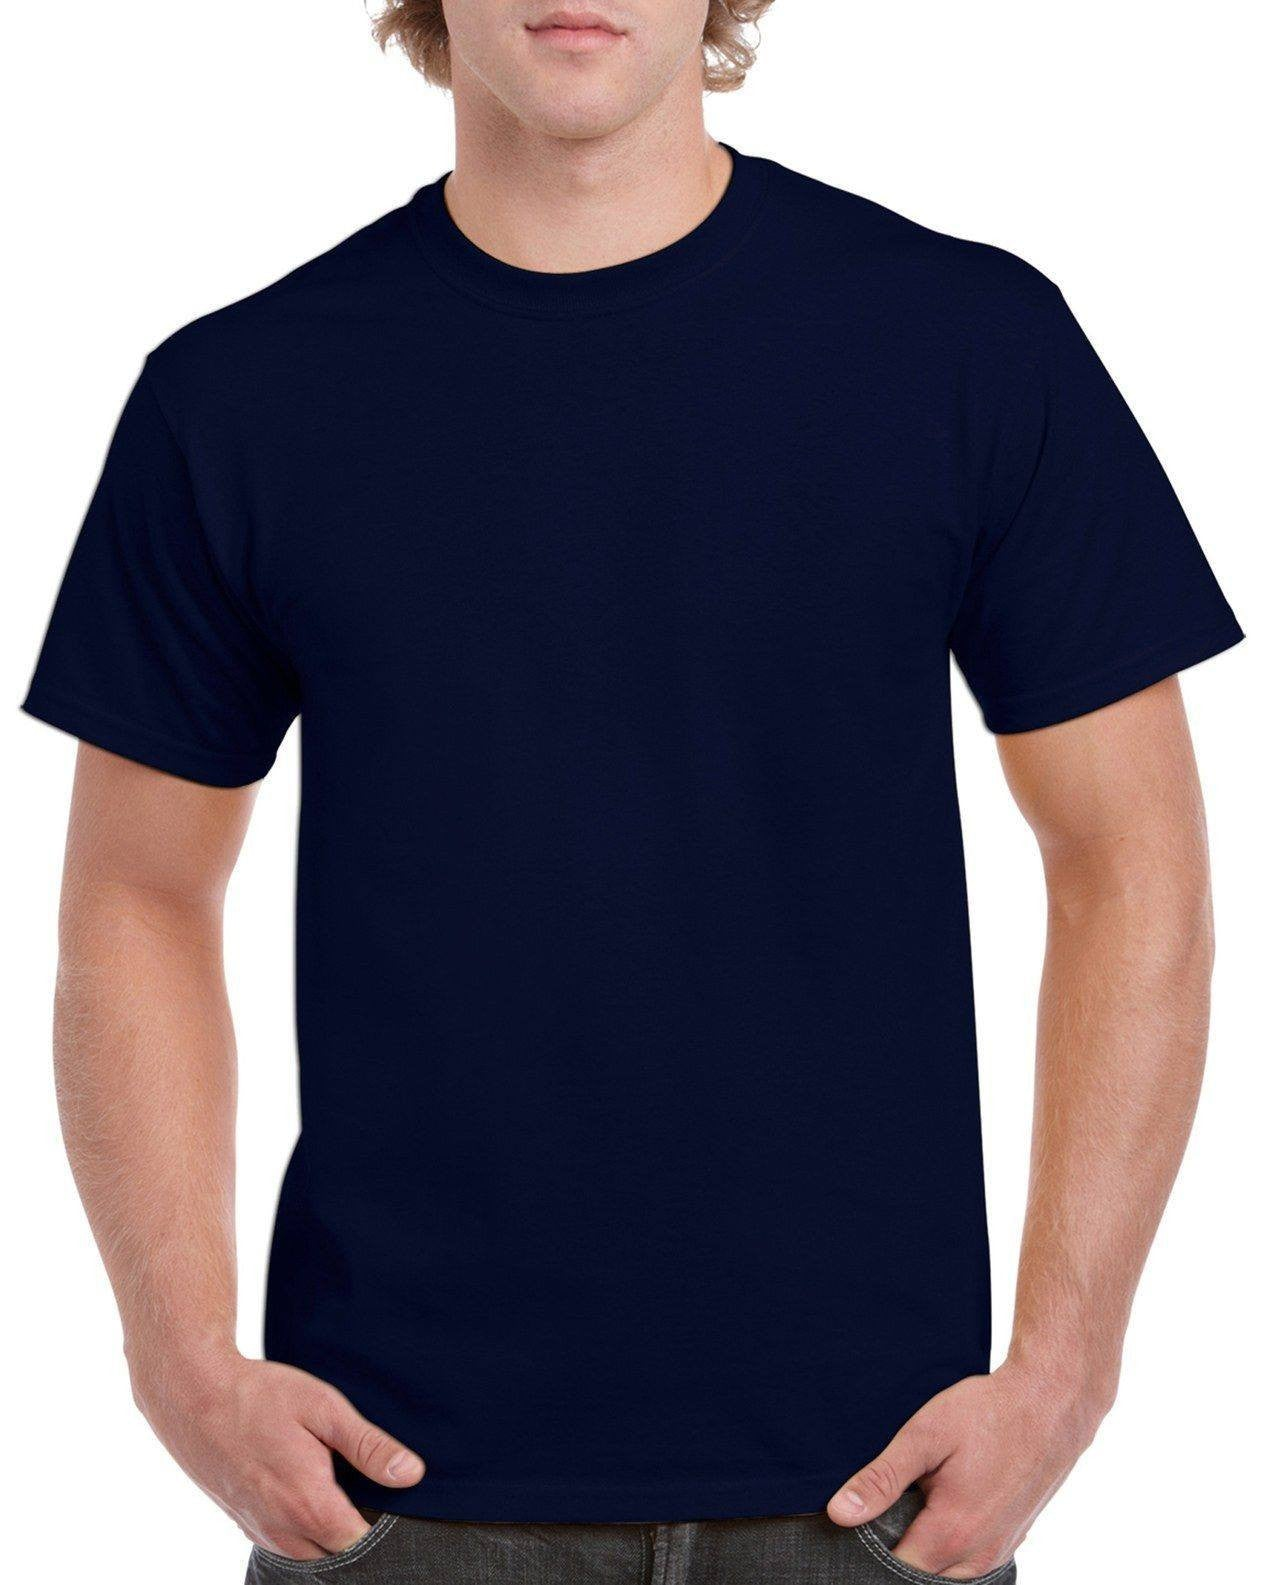 Design Your Own T Shirt With Front Pocket Rldm